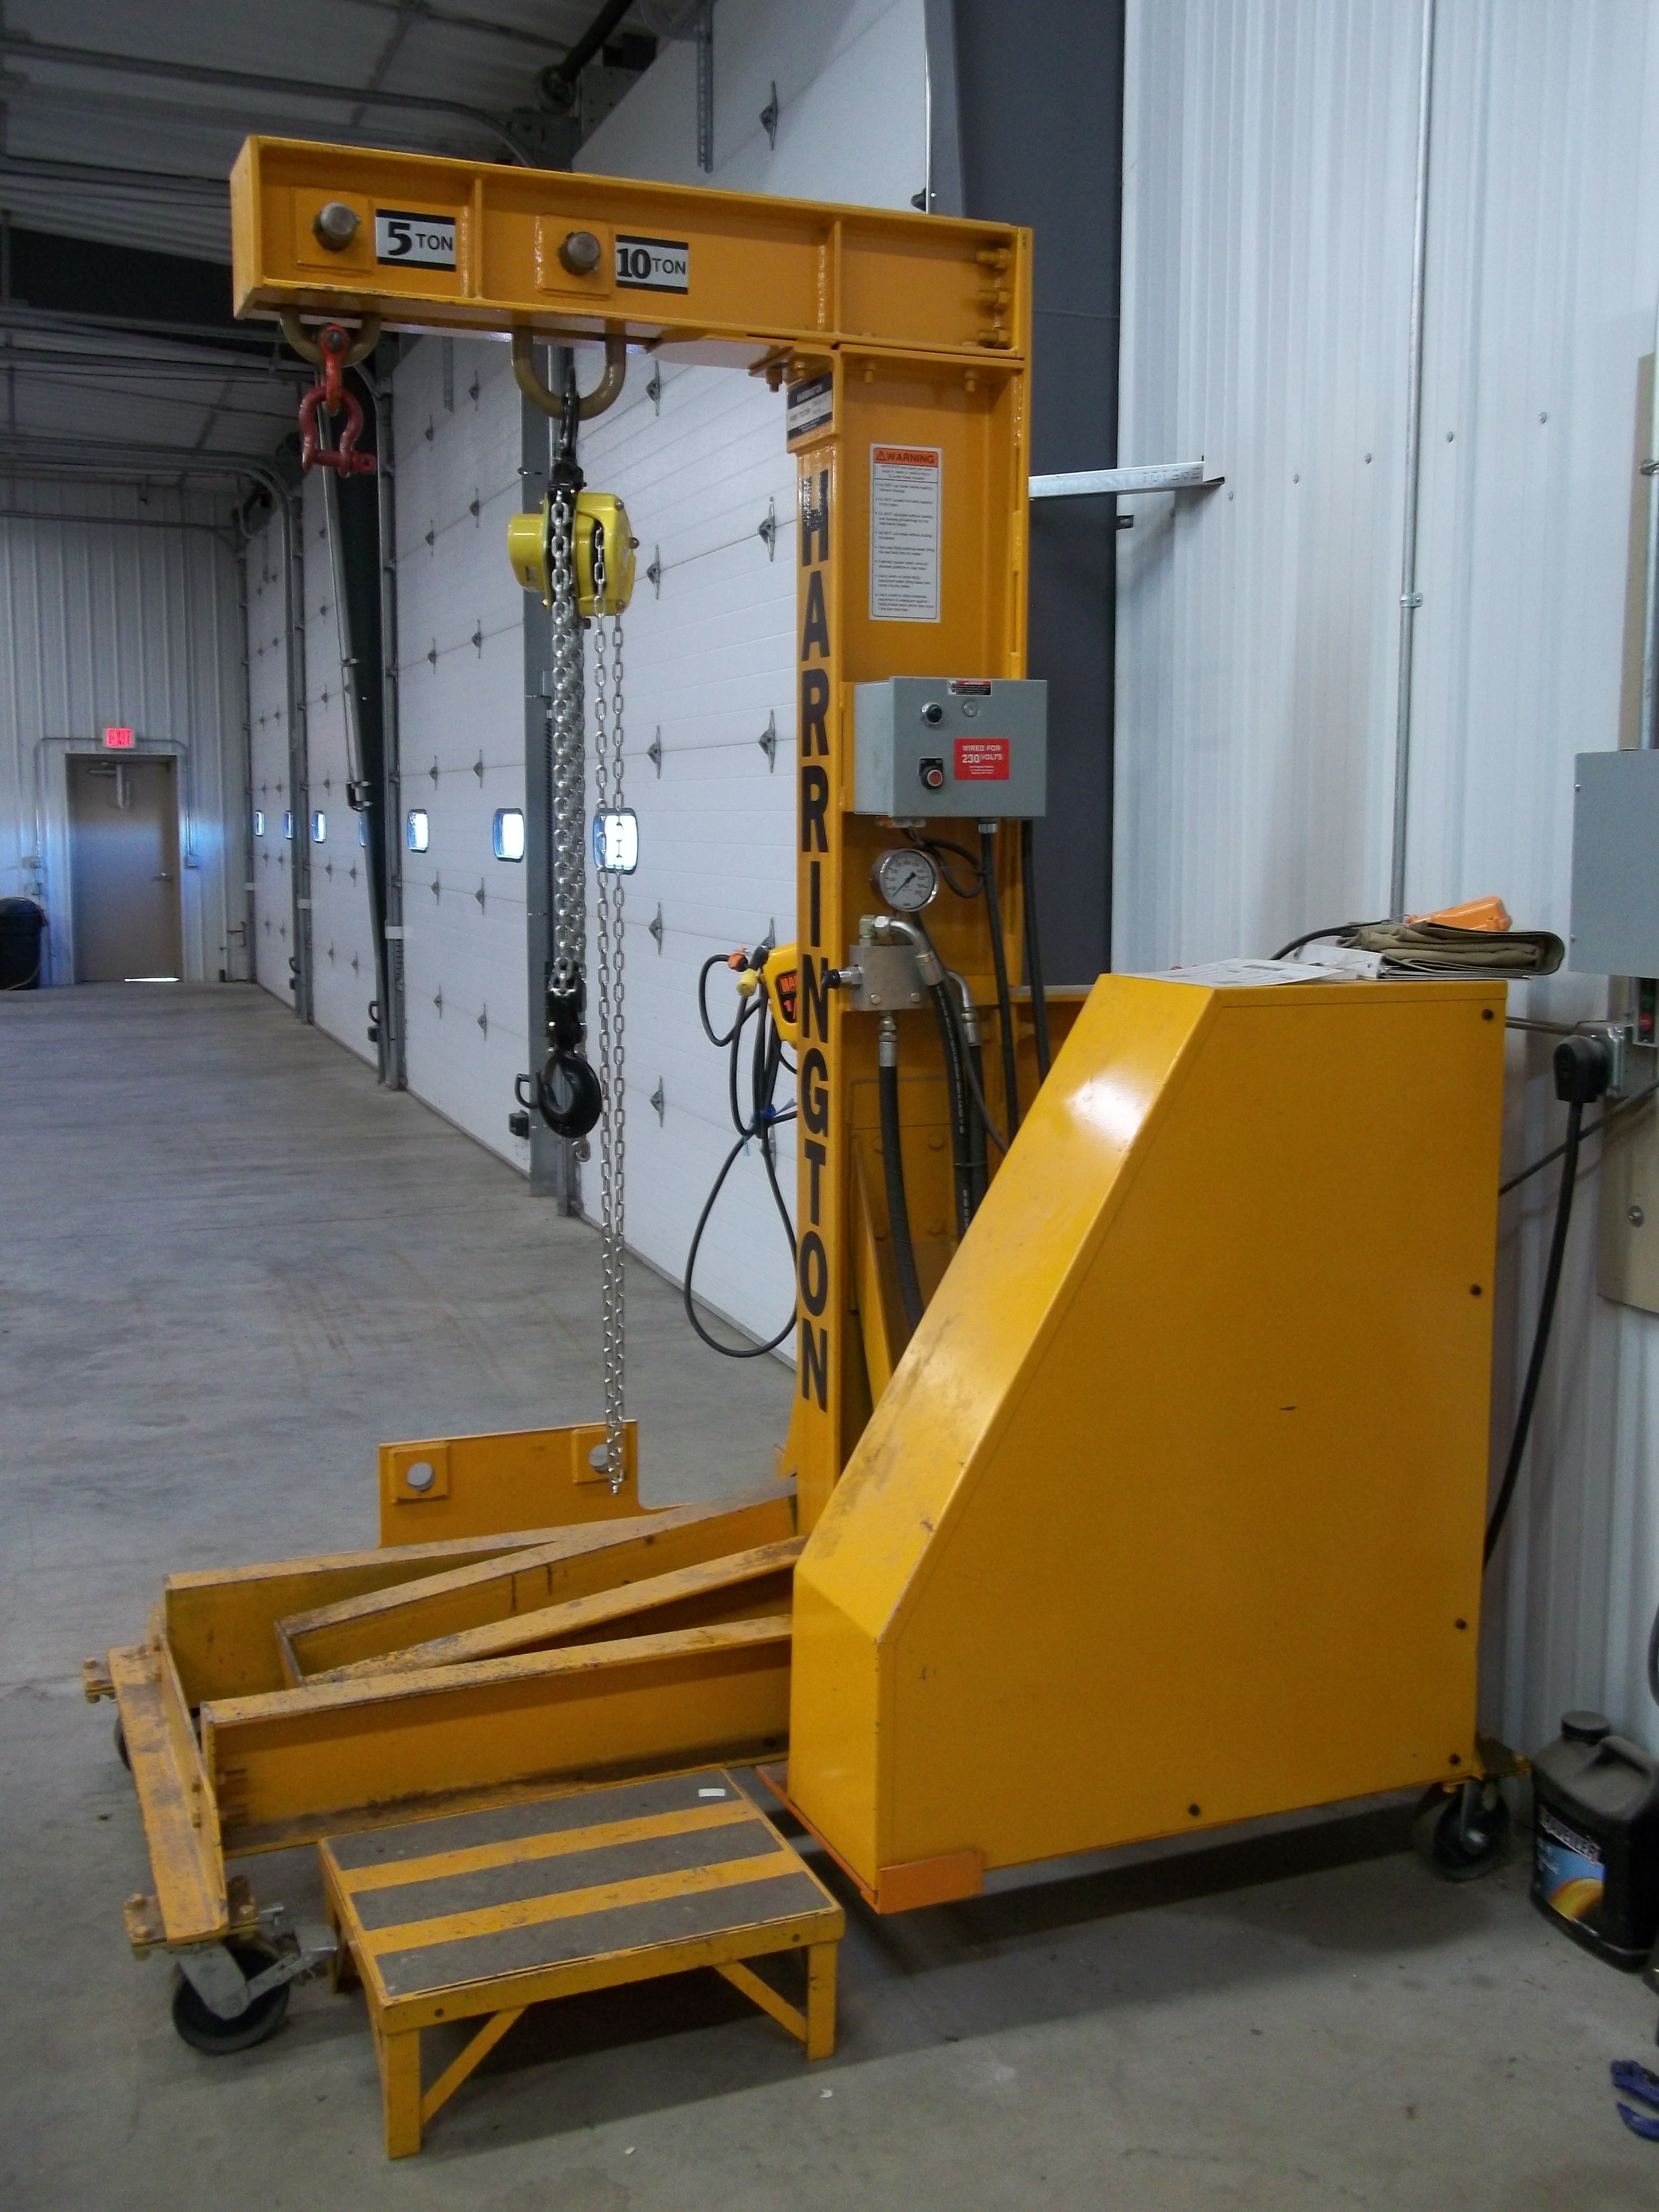 Dynamic Load Testing : Overhead lifting services southern minnesota inspection